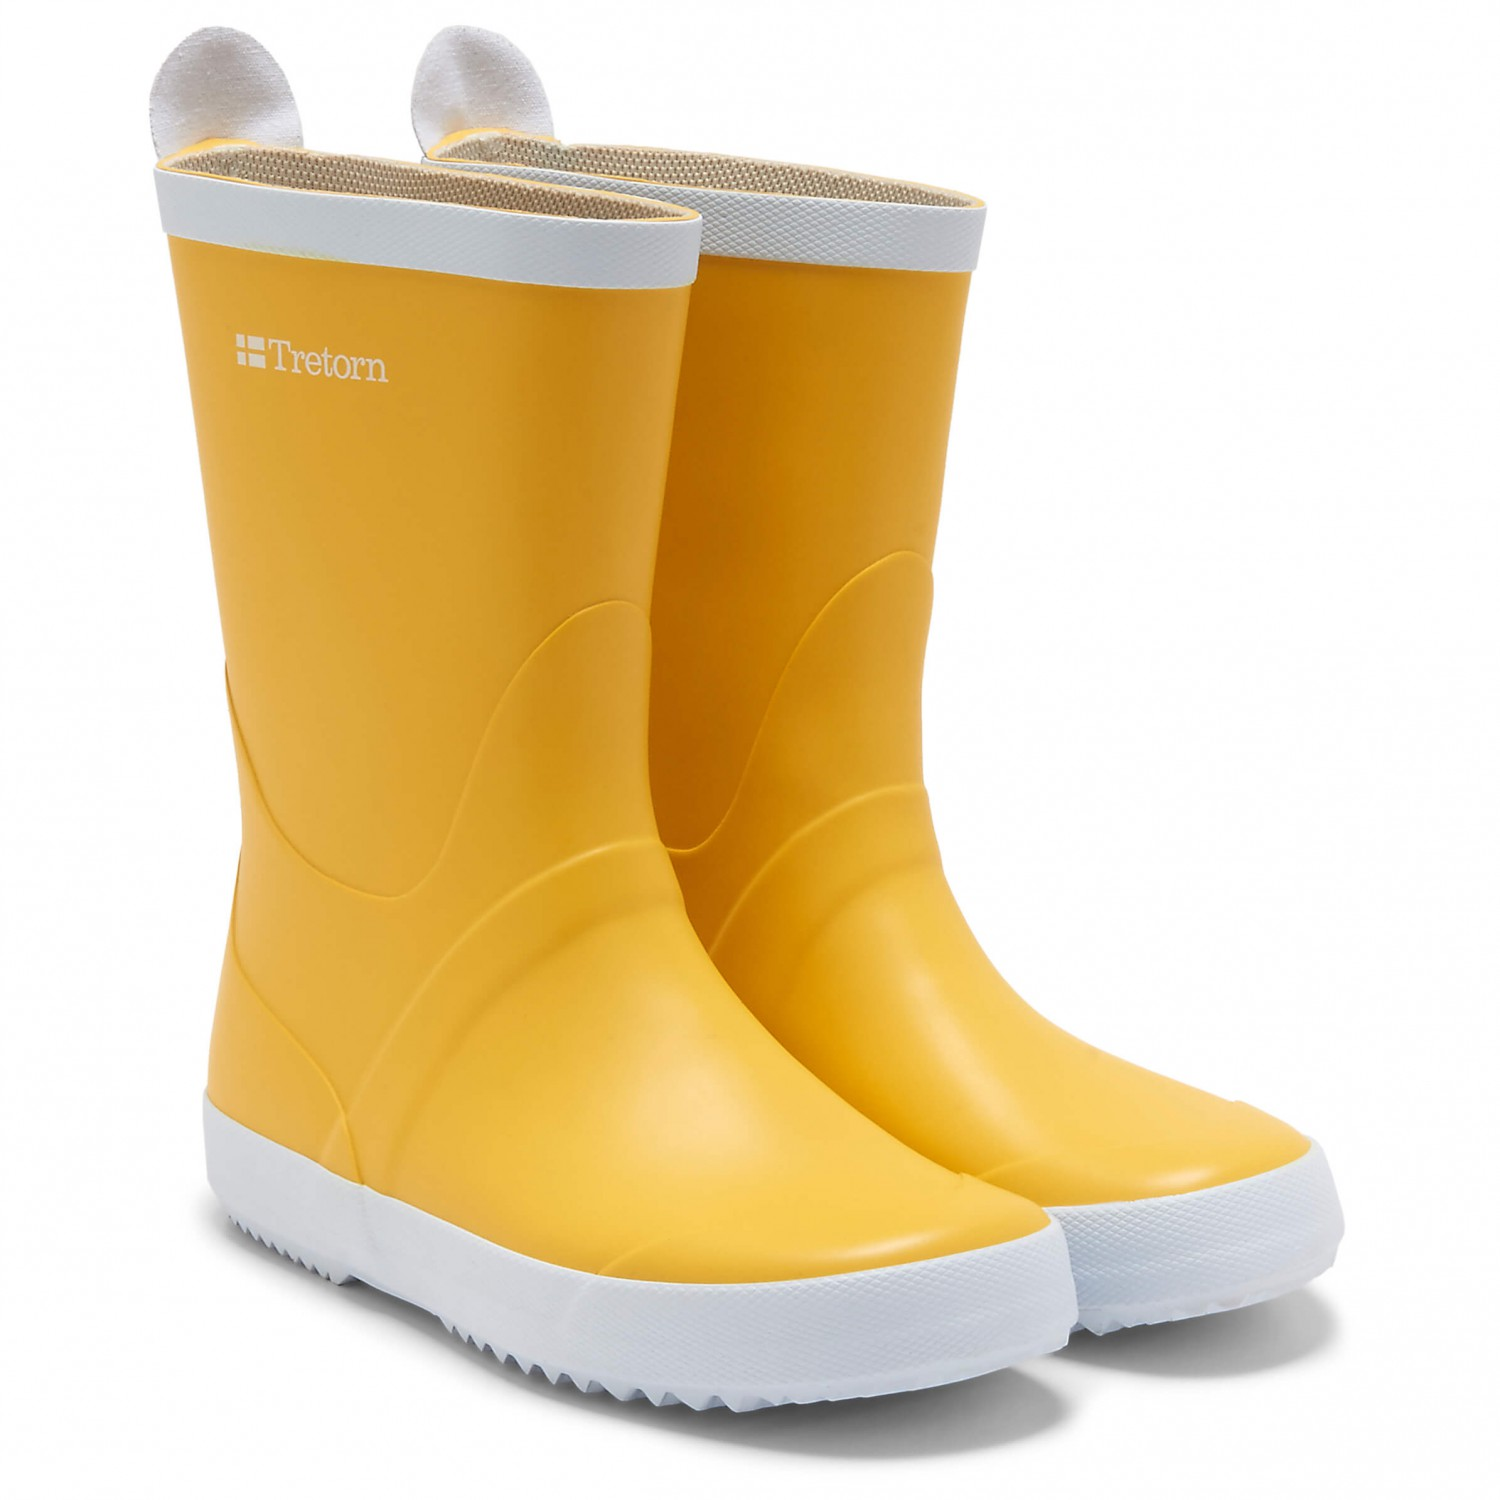 Tretorn Wings Wellington Boots Buy Online Bergfreunde Eu